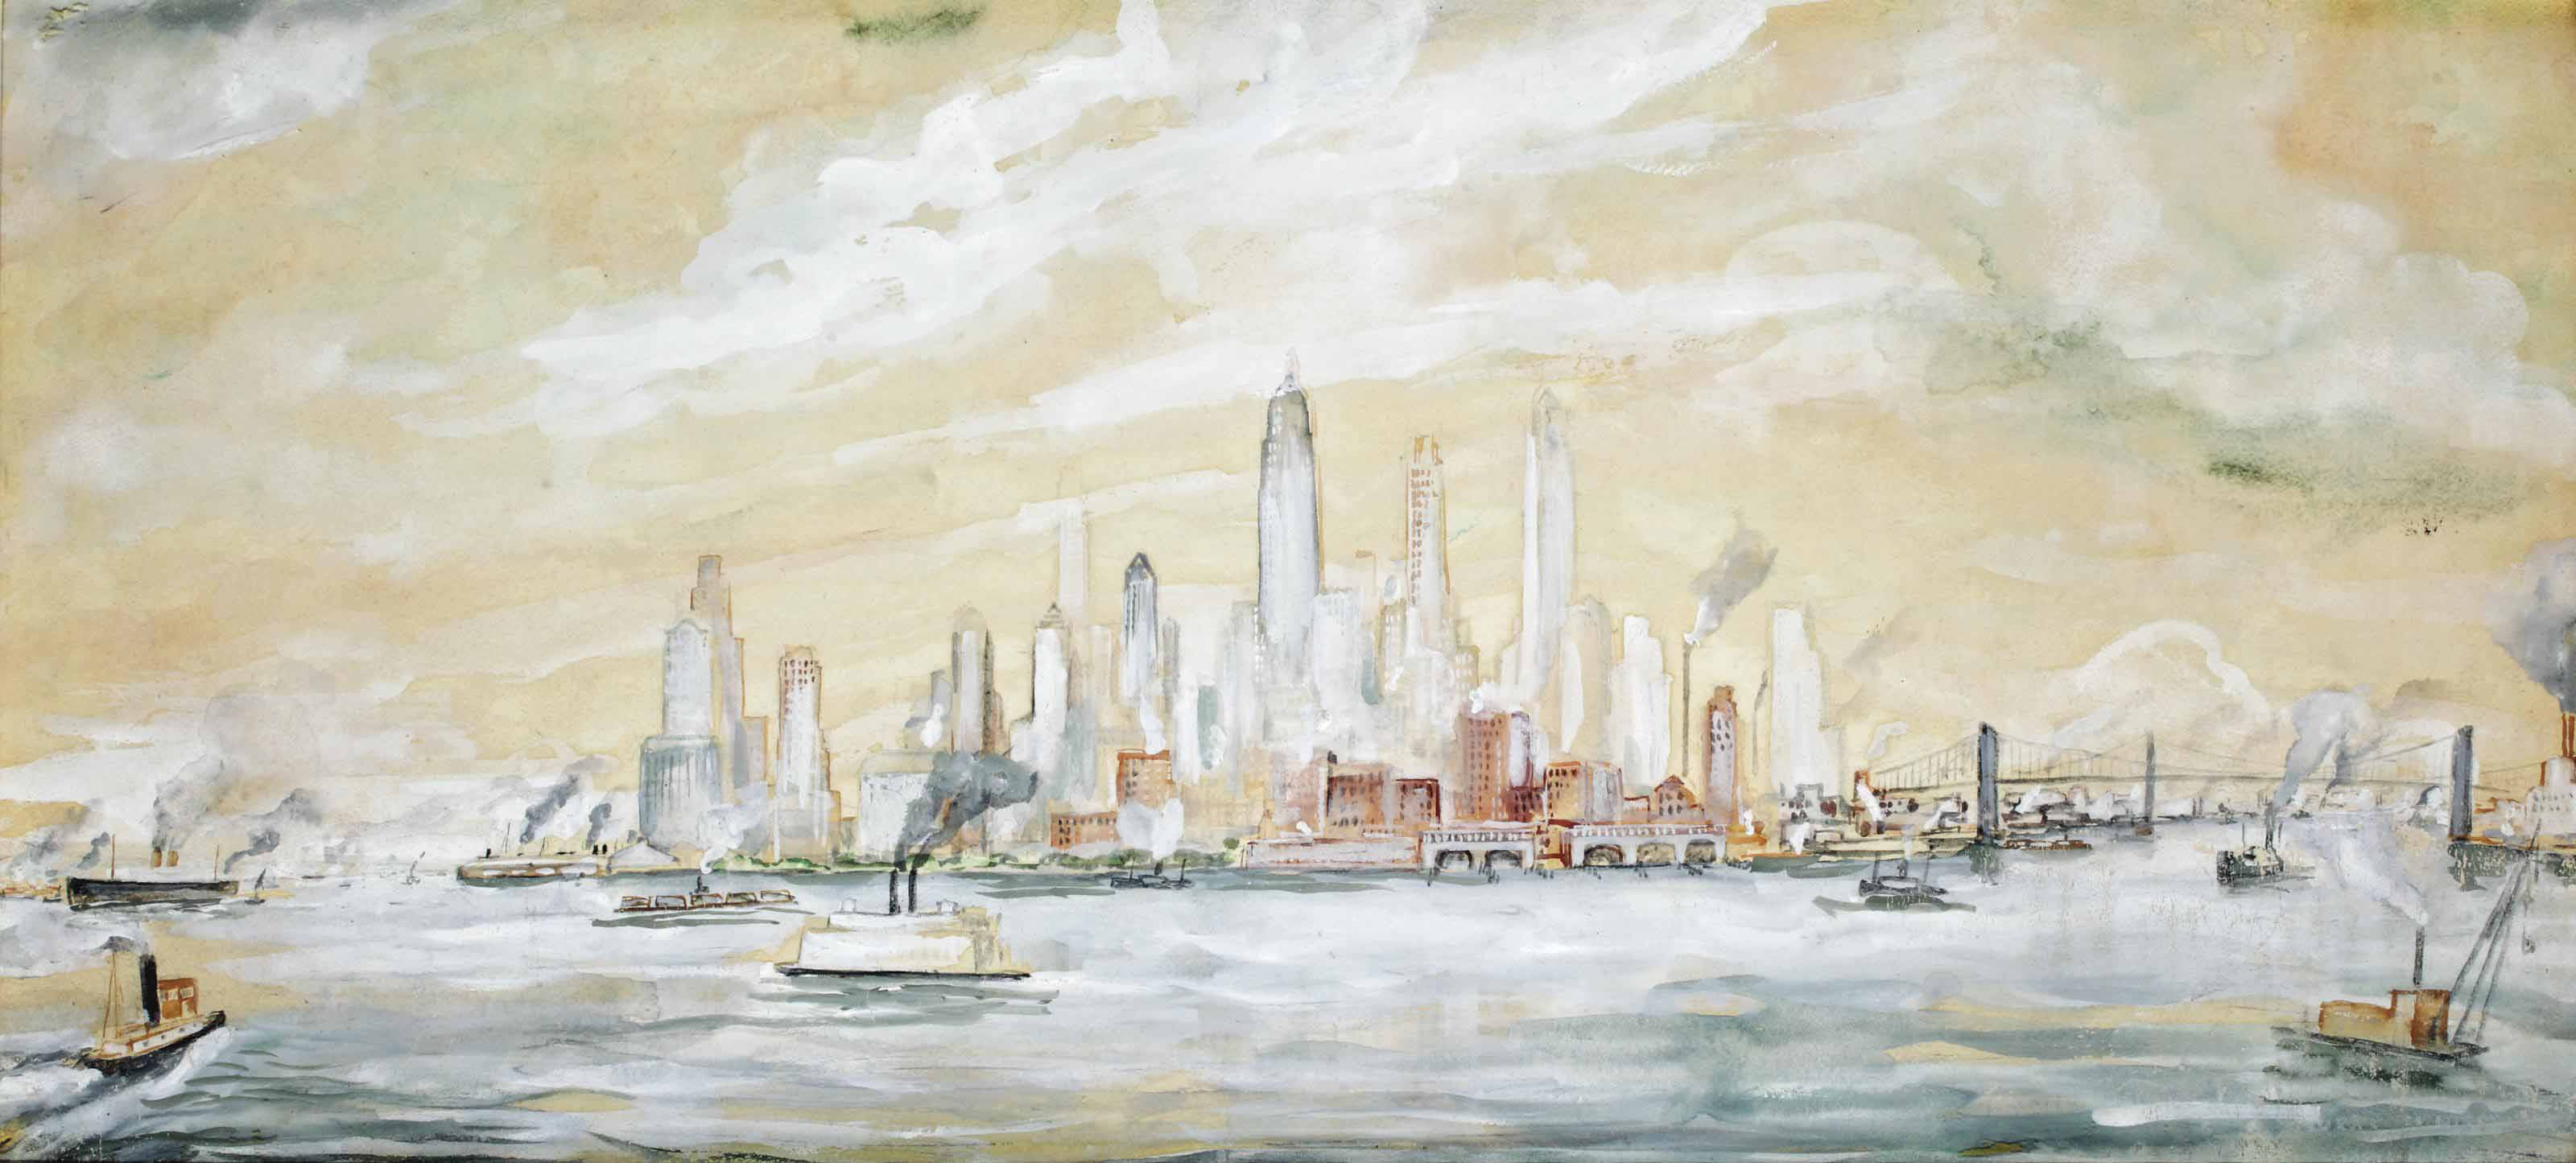 New York seen from Governors Island